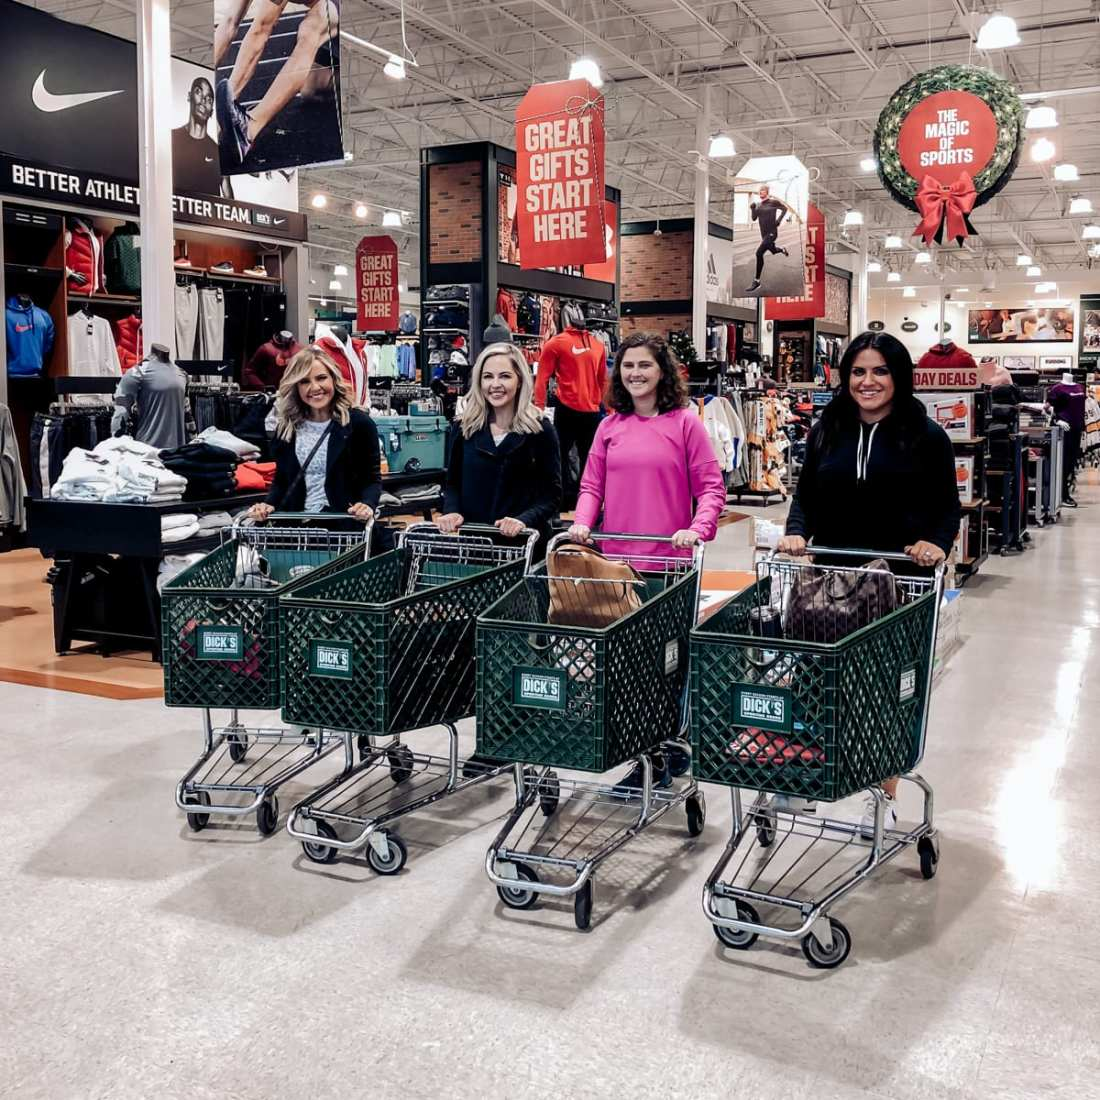 Unwrap the Magic of Sports with Dick's Gift Ideas by popular Nashville life and style blog, Modern Day Moguls: image of four Nashville bloggers with shopping carts at Dick's Sporting Goods.